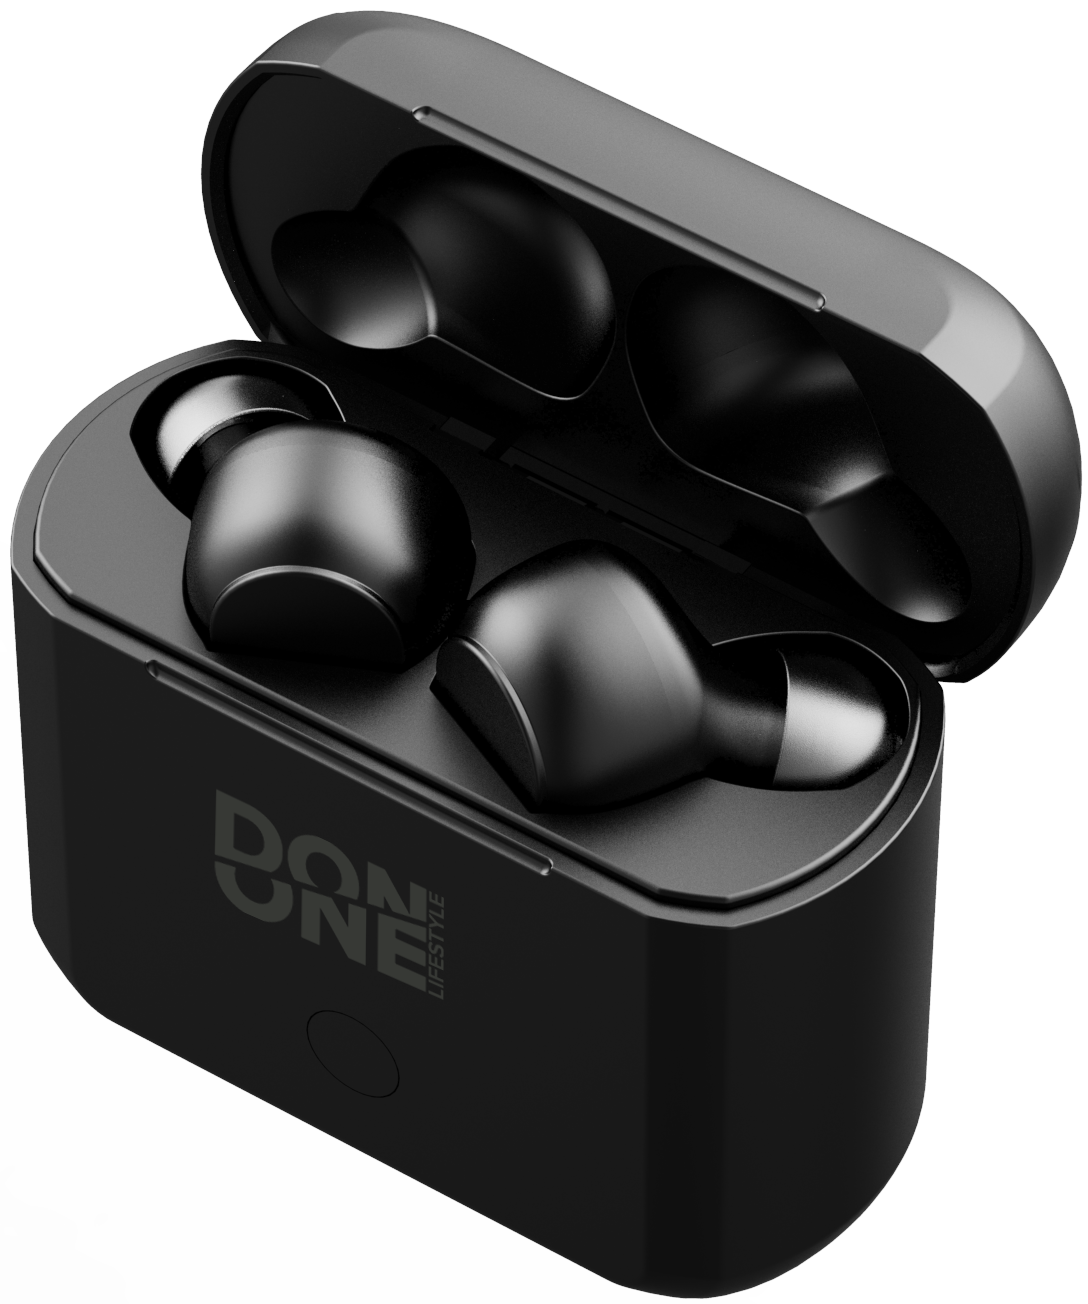 DON ONE Lifestyle - TWS120 (Schwarz)